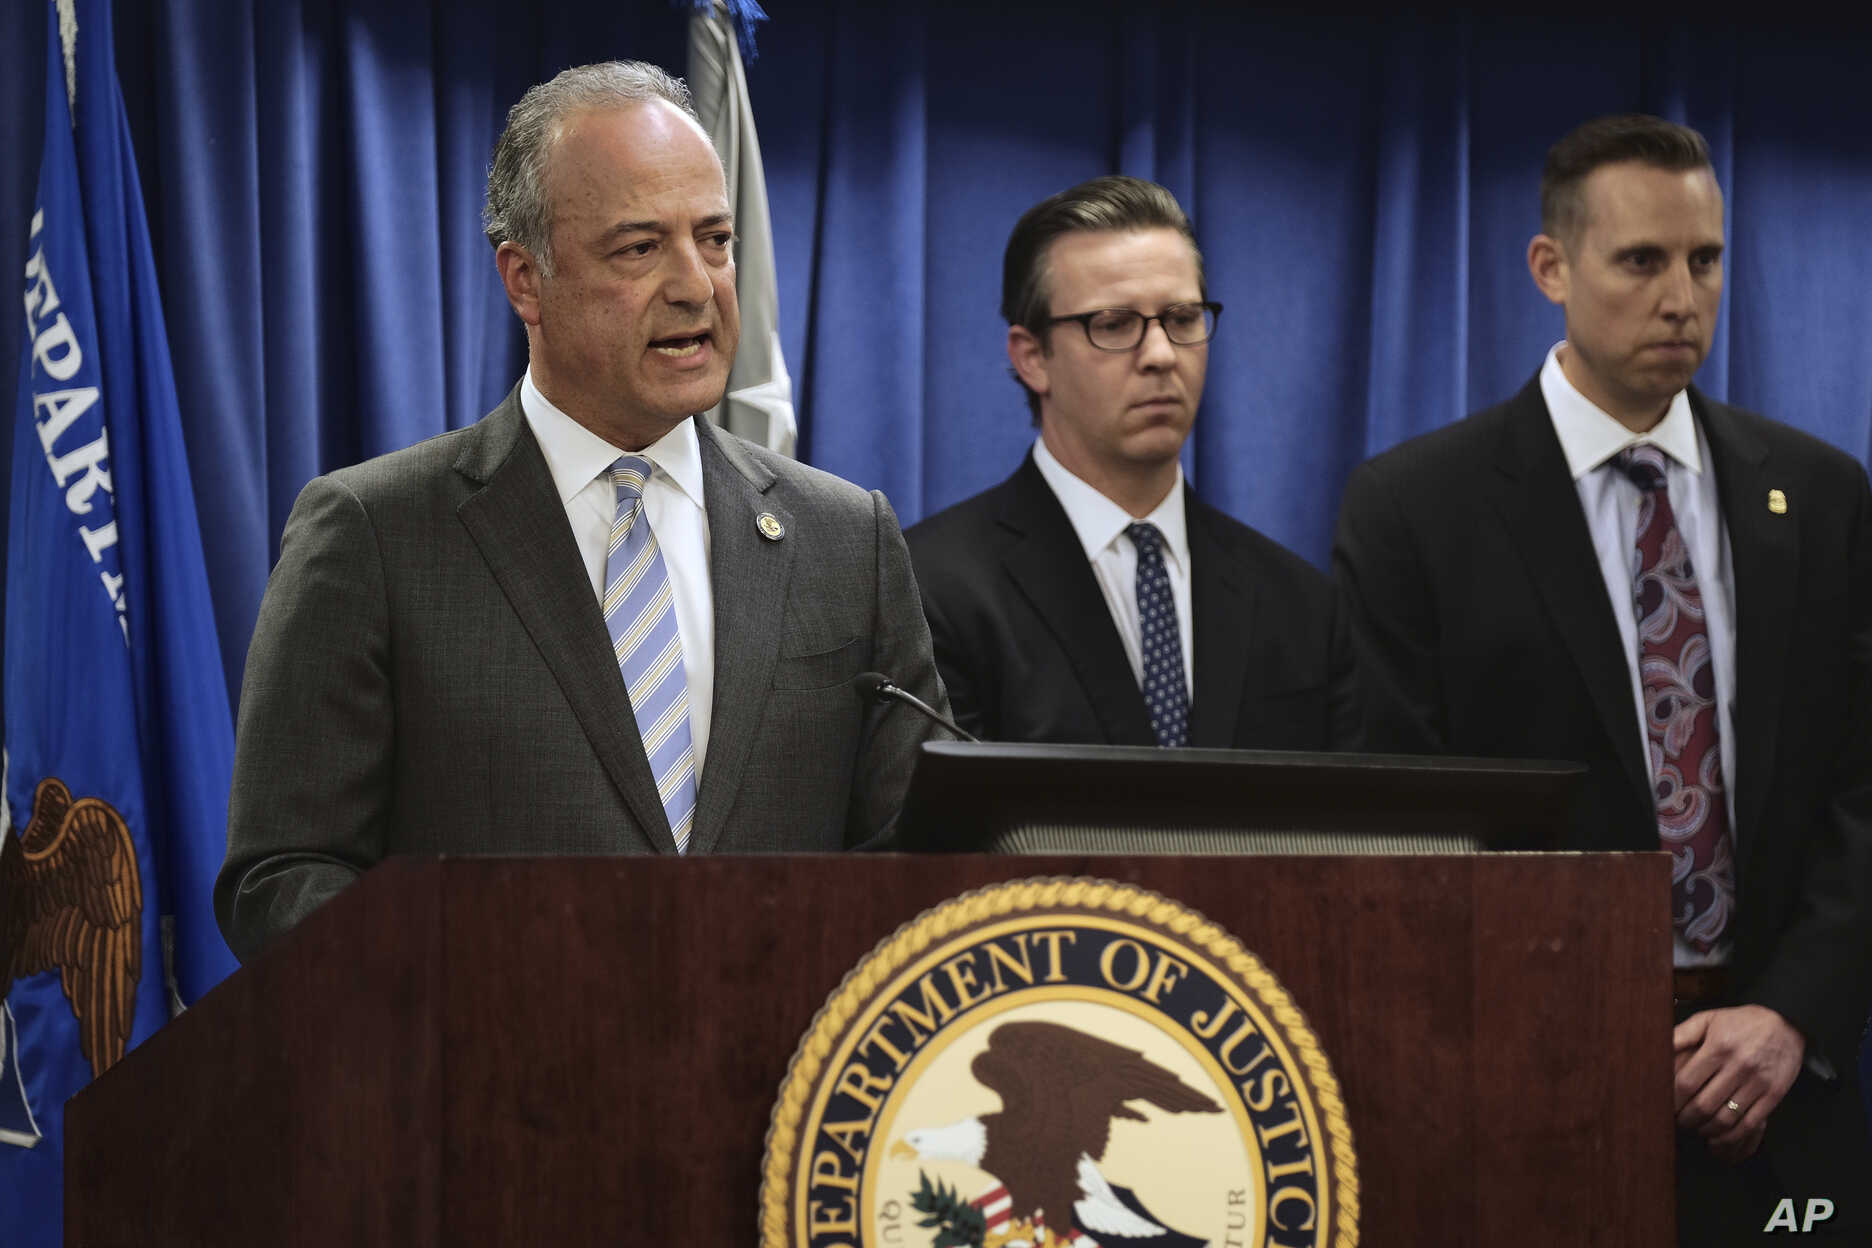 United States Attorney Nick Hanna, left, announces the latest on new federal charges against attorney Michael Avenatti during a news conference in Los Angeles, April 11, 2019.